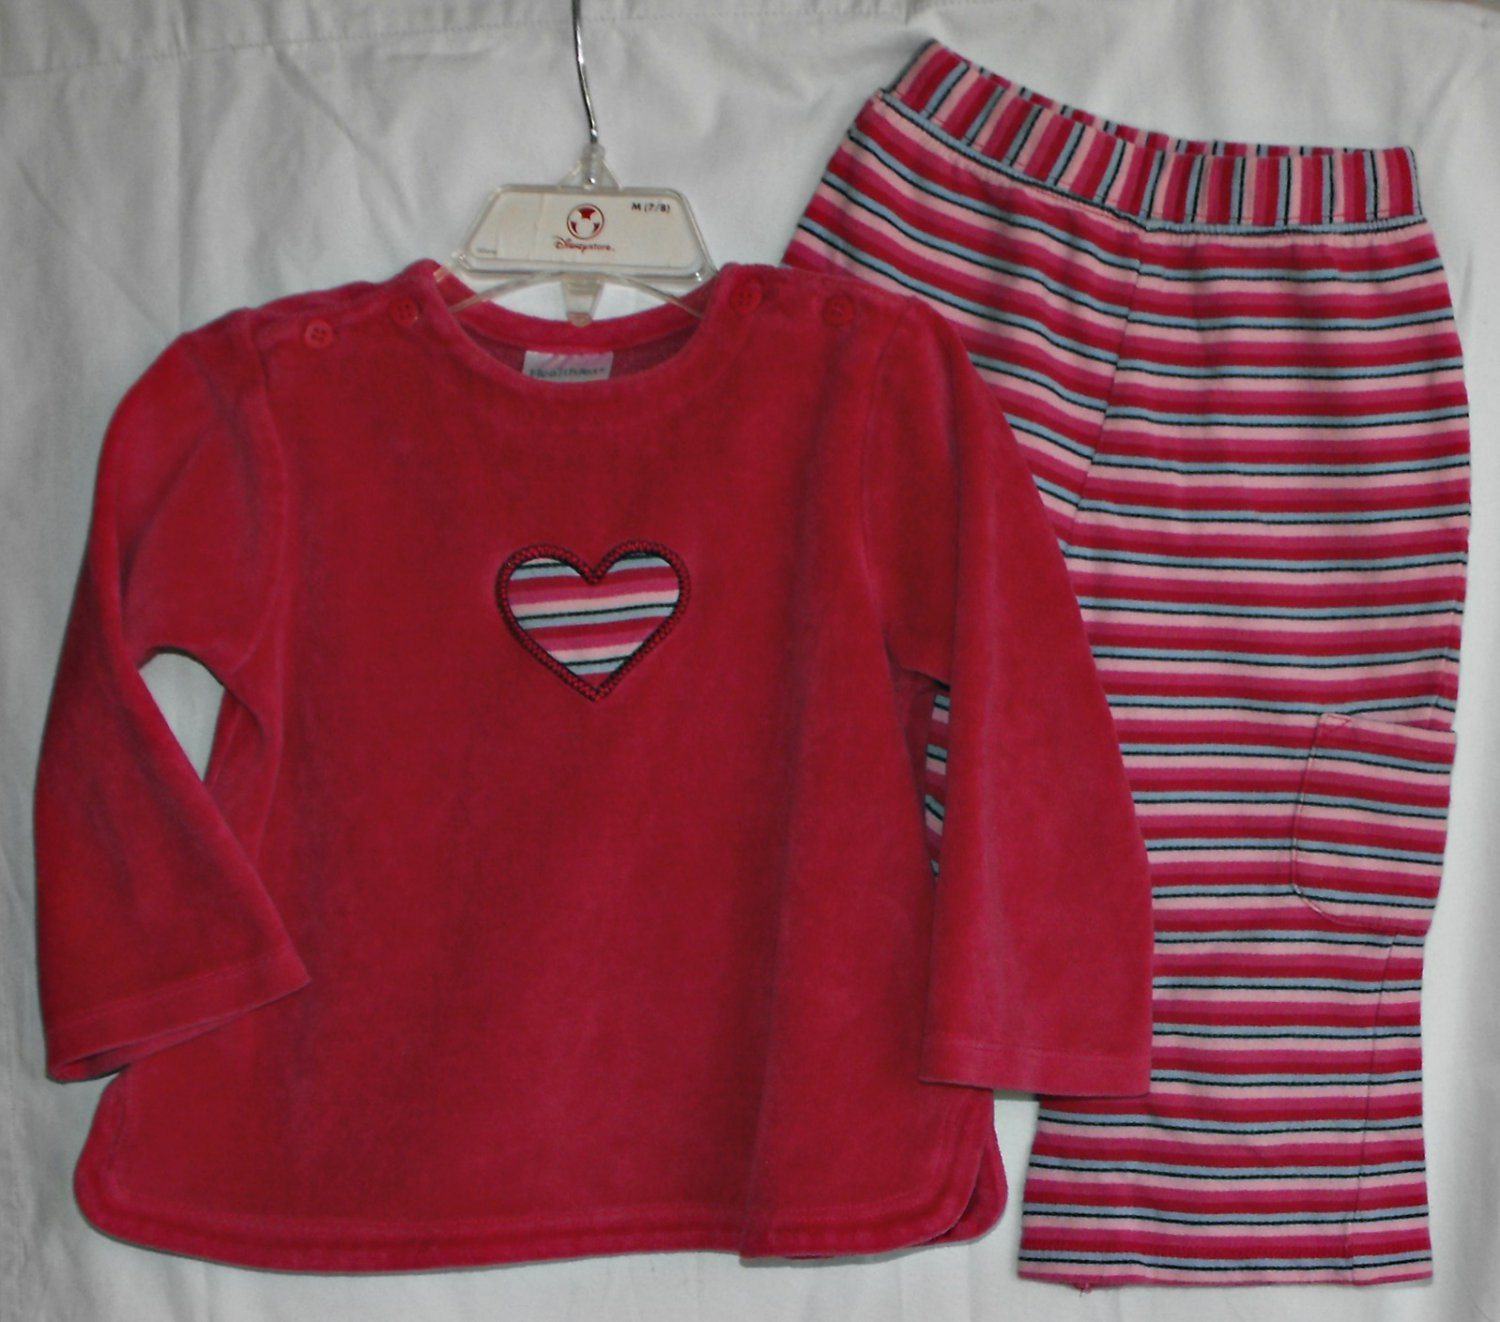 Health Tex Baby Girl 24 month pants 2 peice outfit